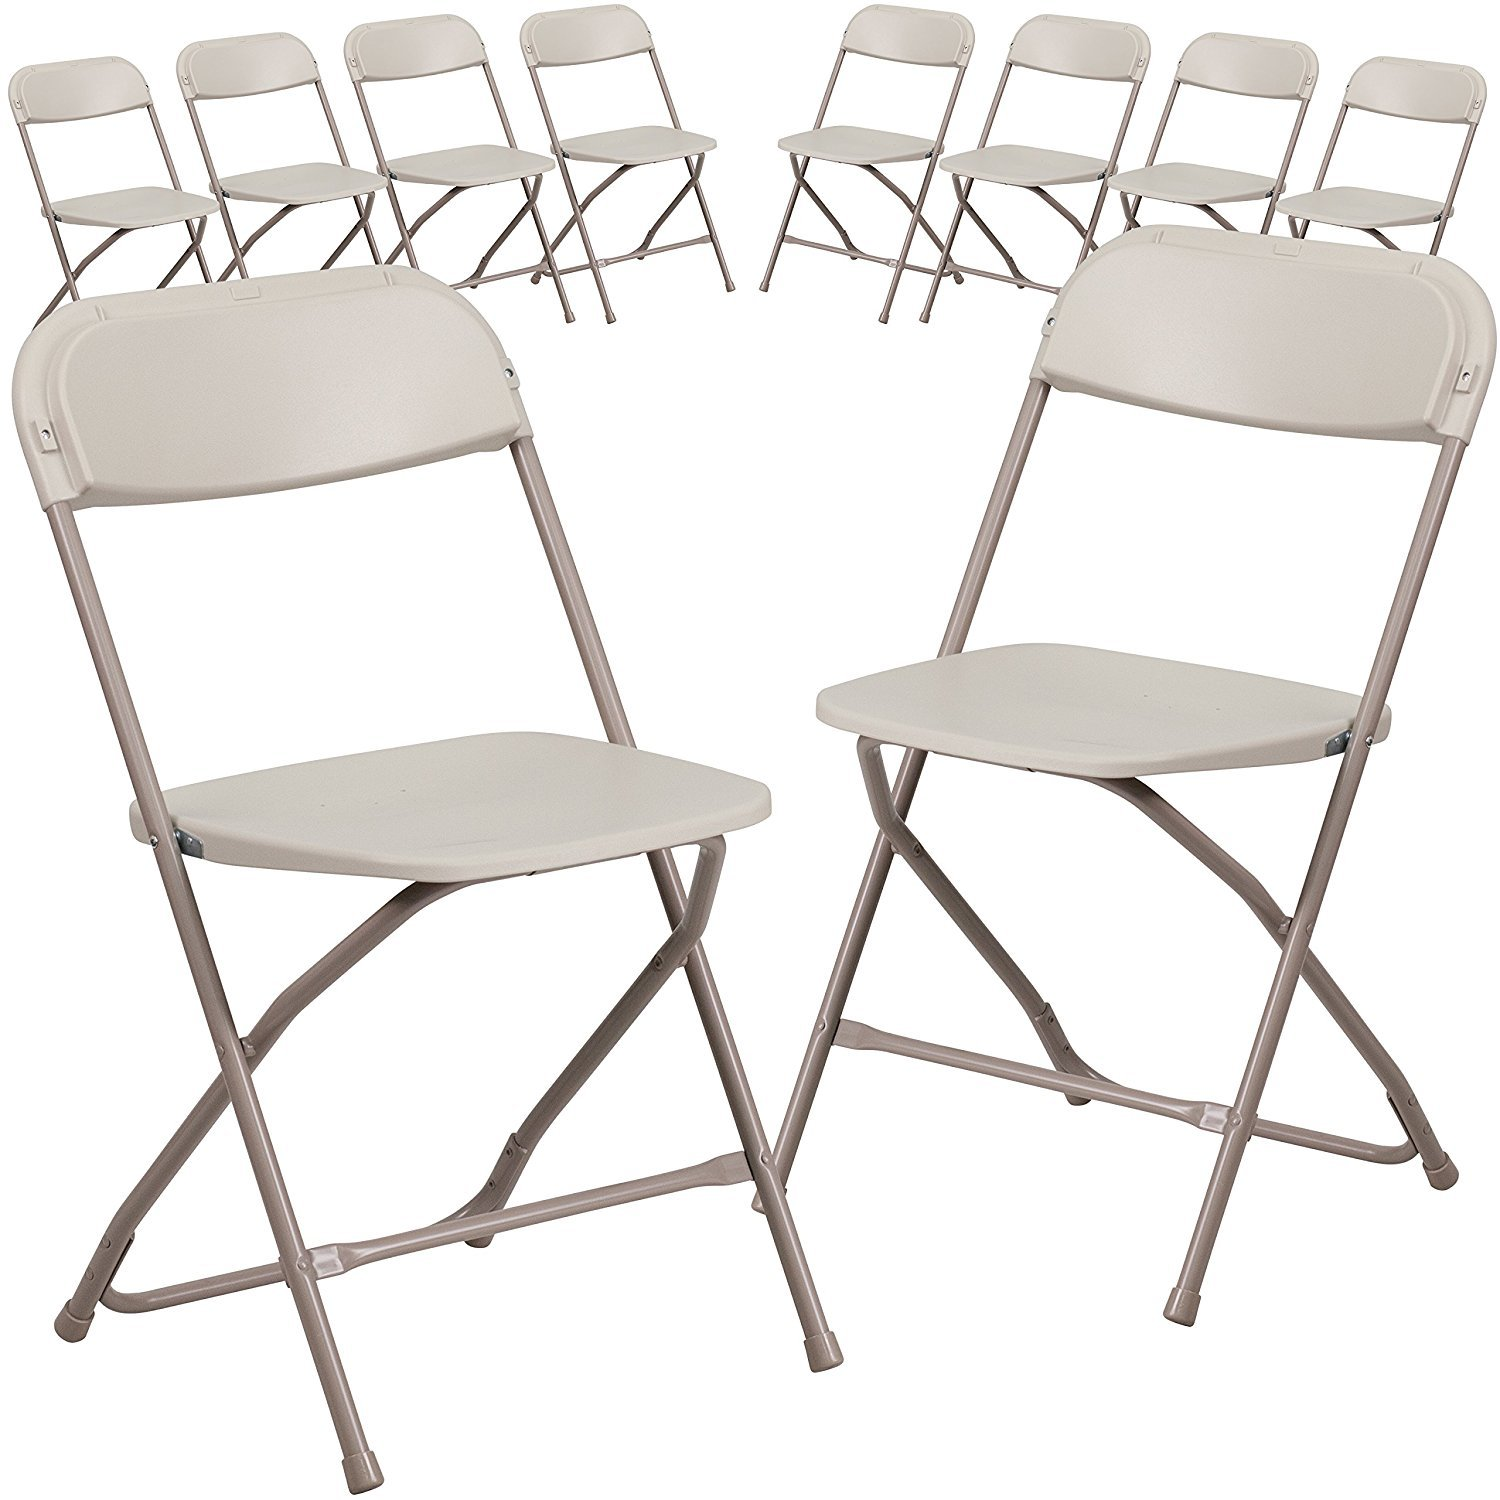 Flash Furniture HERCULES Series 800 lb. Capacity Premium Beige Plastic Folding Chair (20-Chairs)